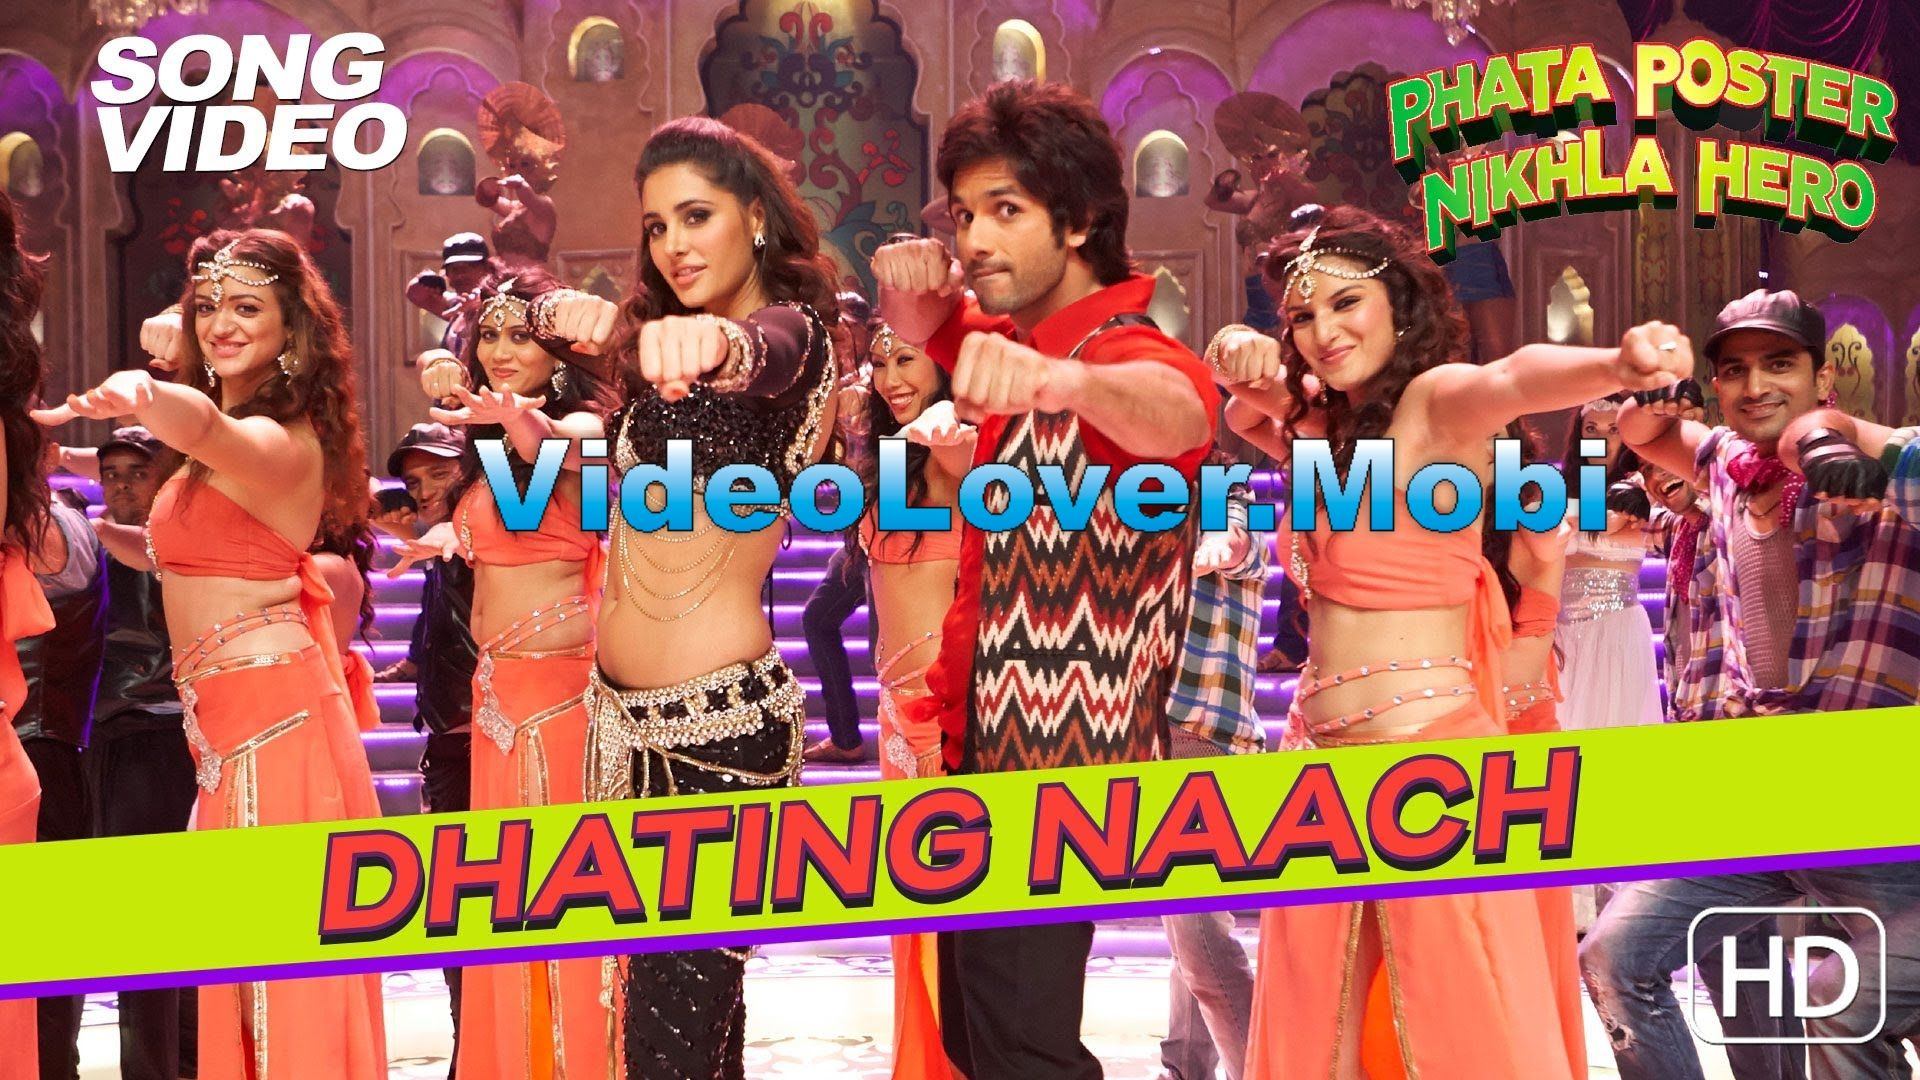 Dhating Naach Plenary Song Hd Untie Download